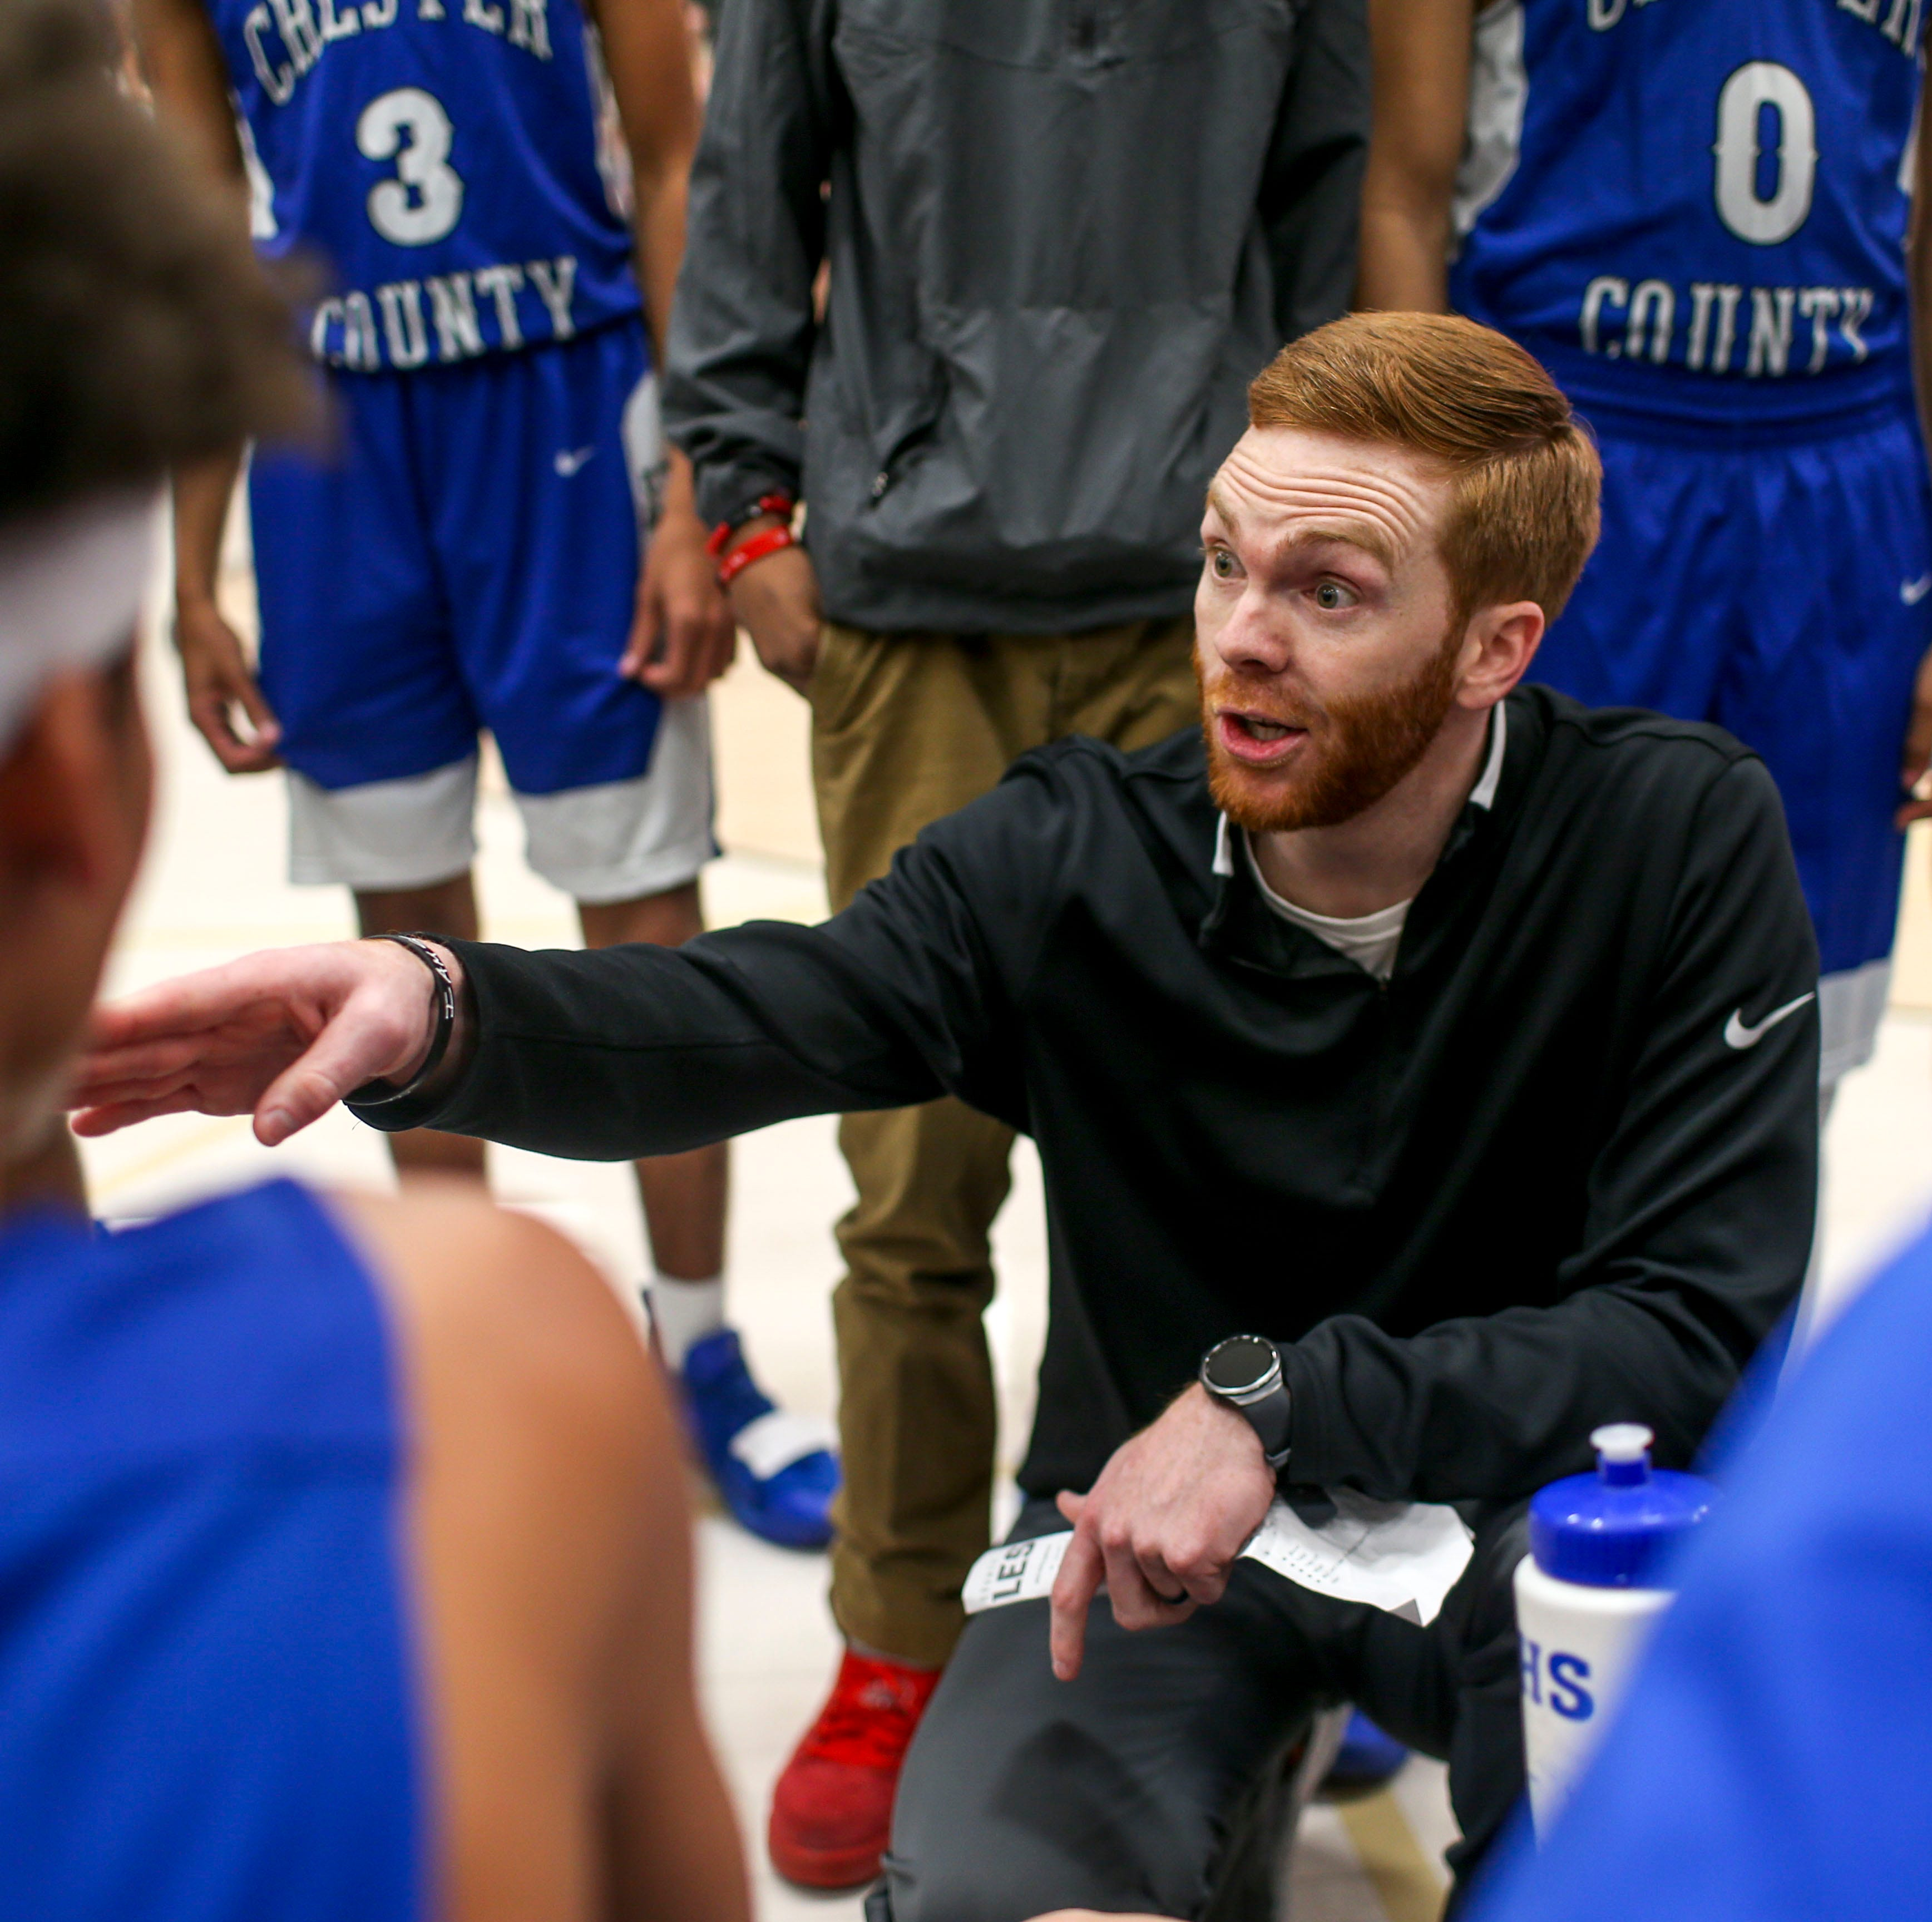 Drew Stutts leaving Chester County boys basketball to become head coach at Freed-Hardeman